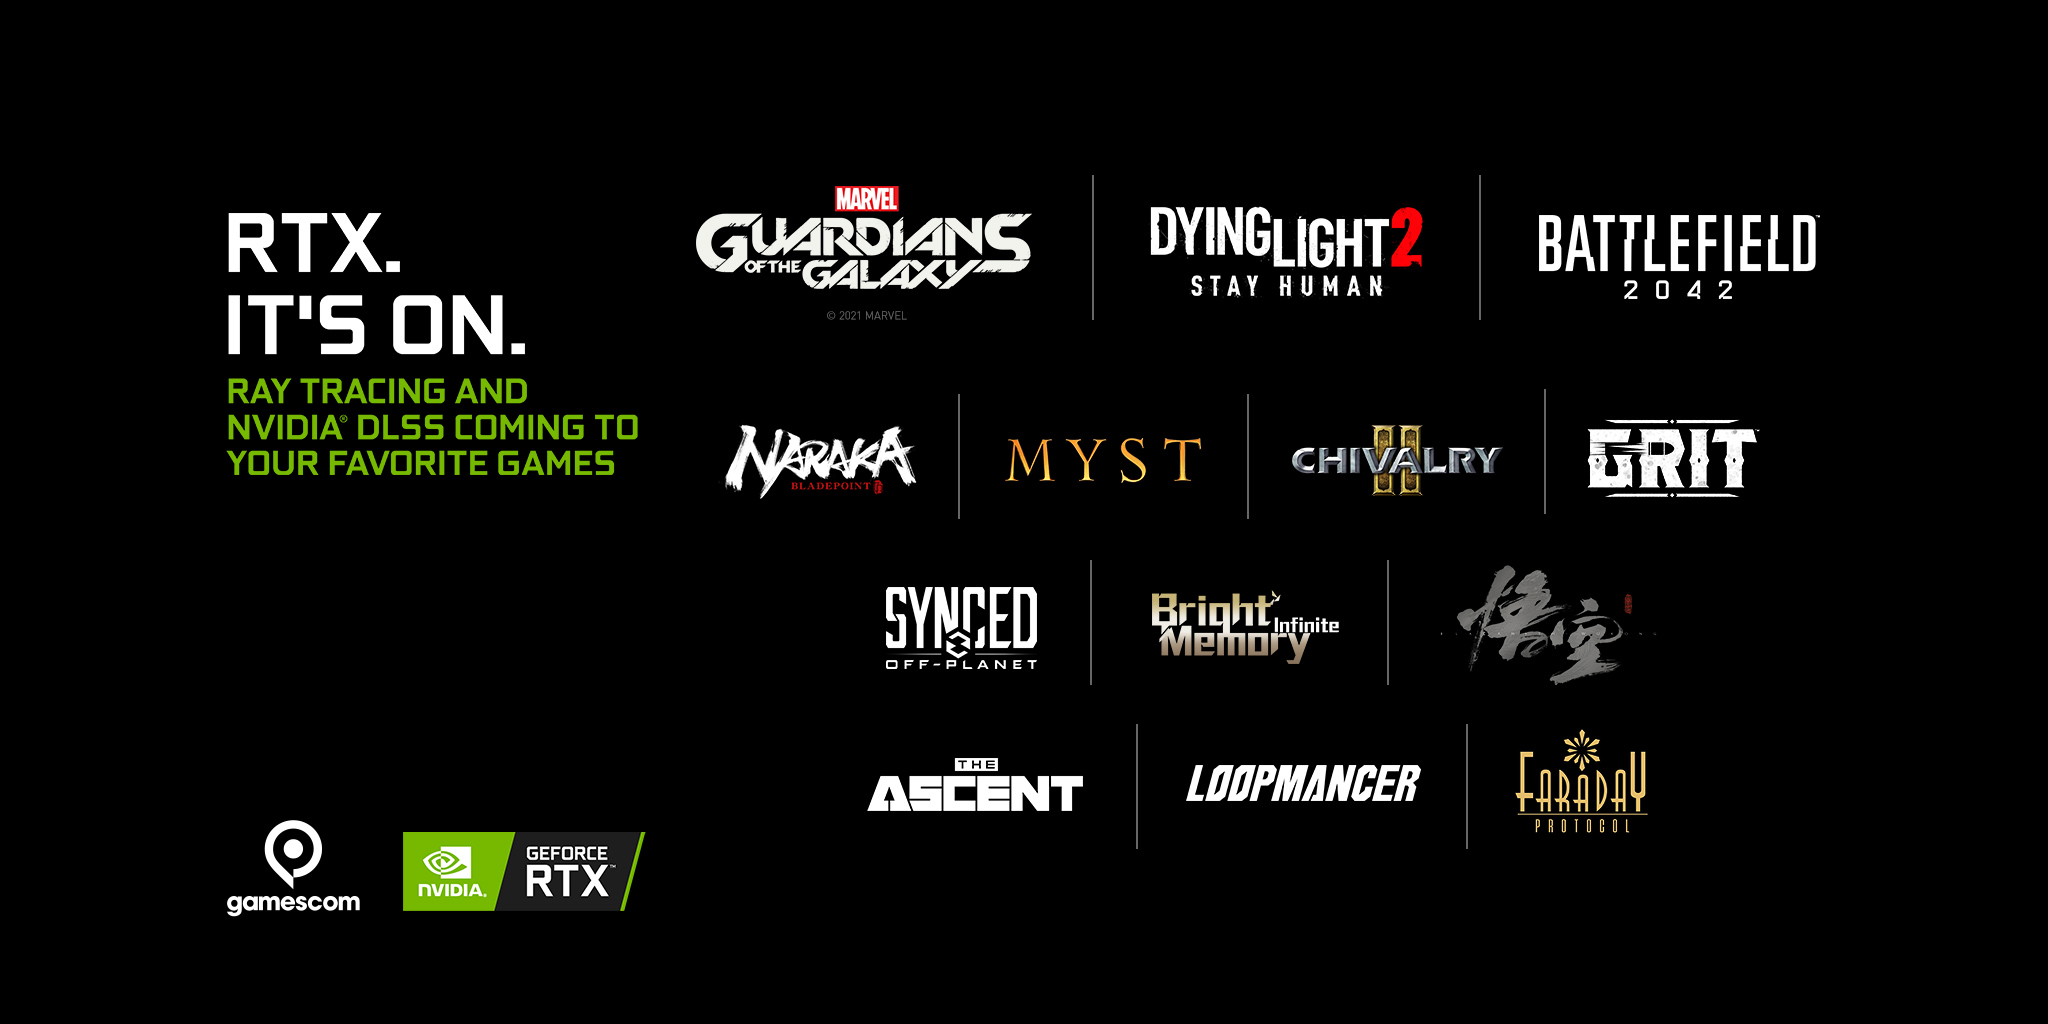 New games coming with Ray Tracing and Nvidia DLSS support